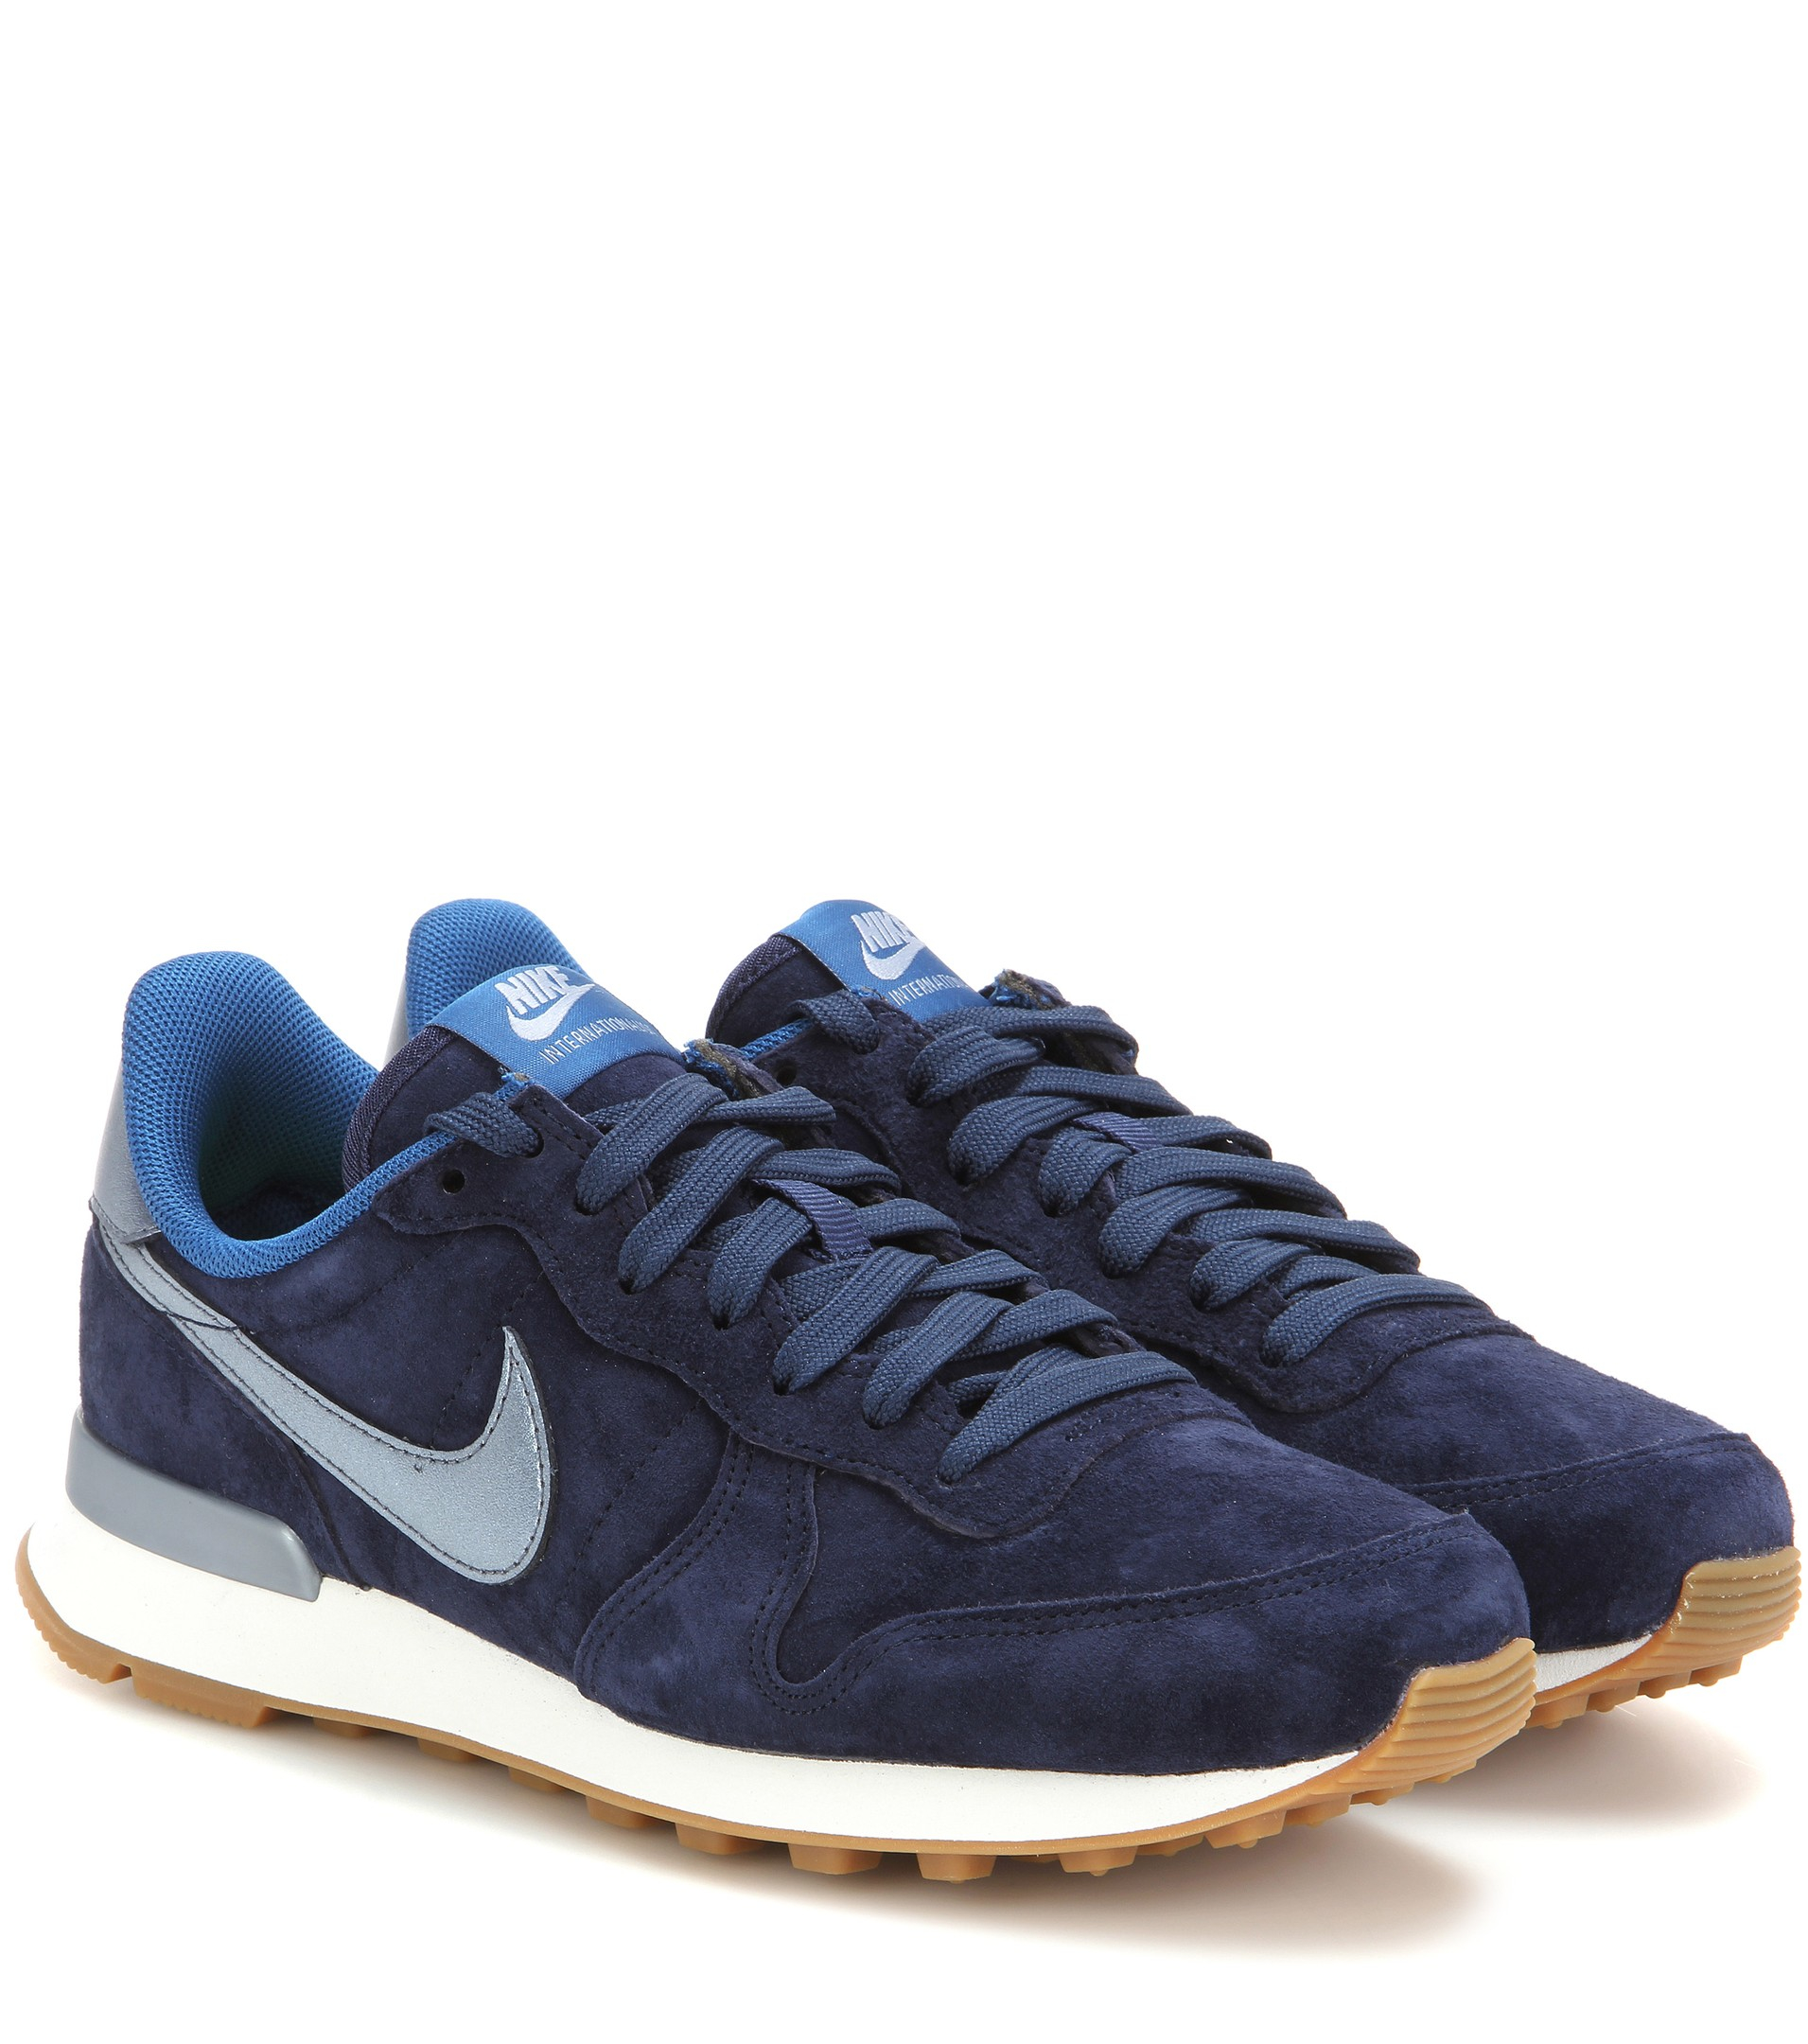 Sneakers Sneakers Sneakers Suede Internationalist Internationalist Internationalist Internationalist Suede Suede Suede Sneakers iuXPkZO